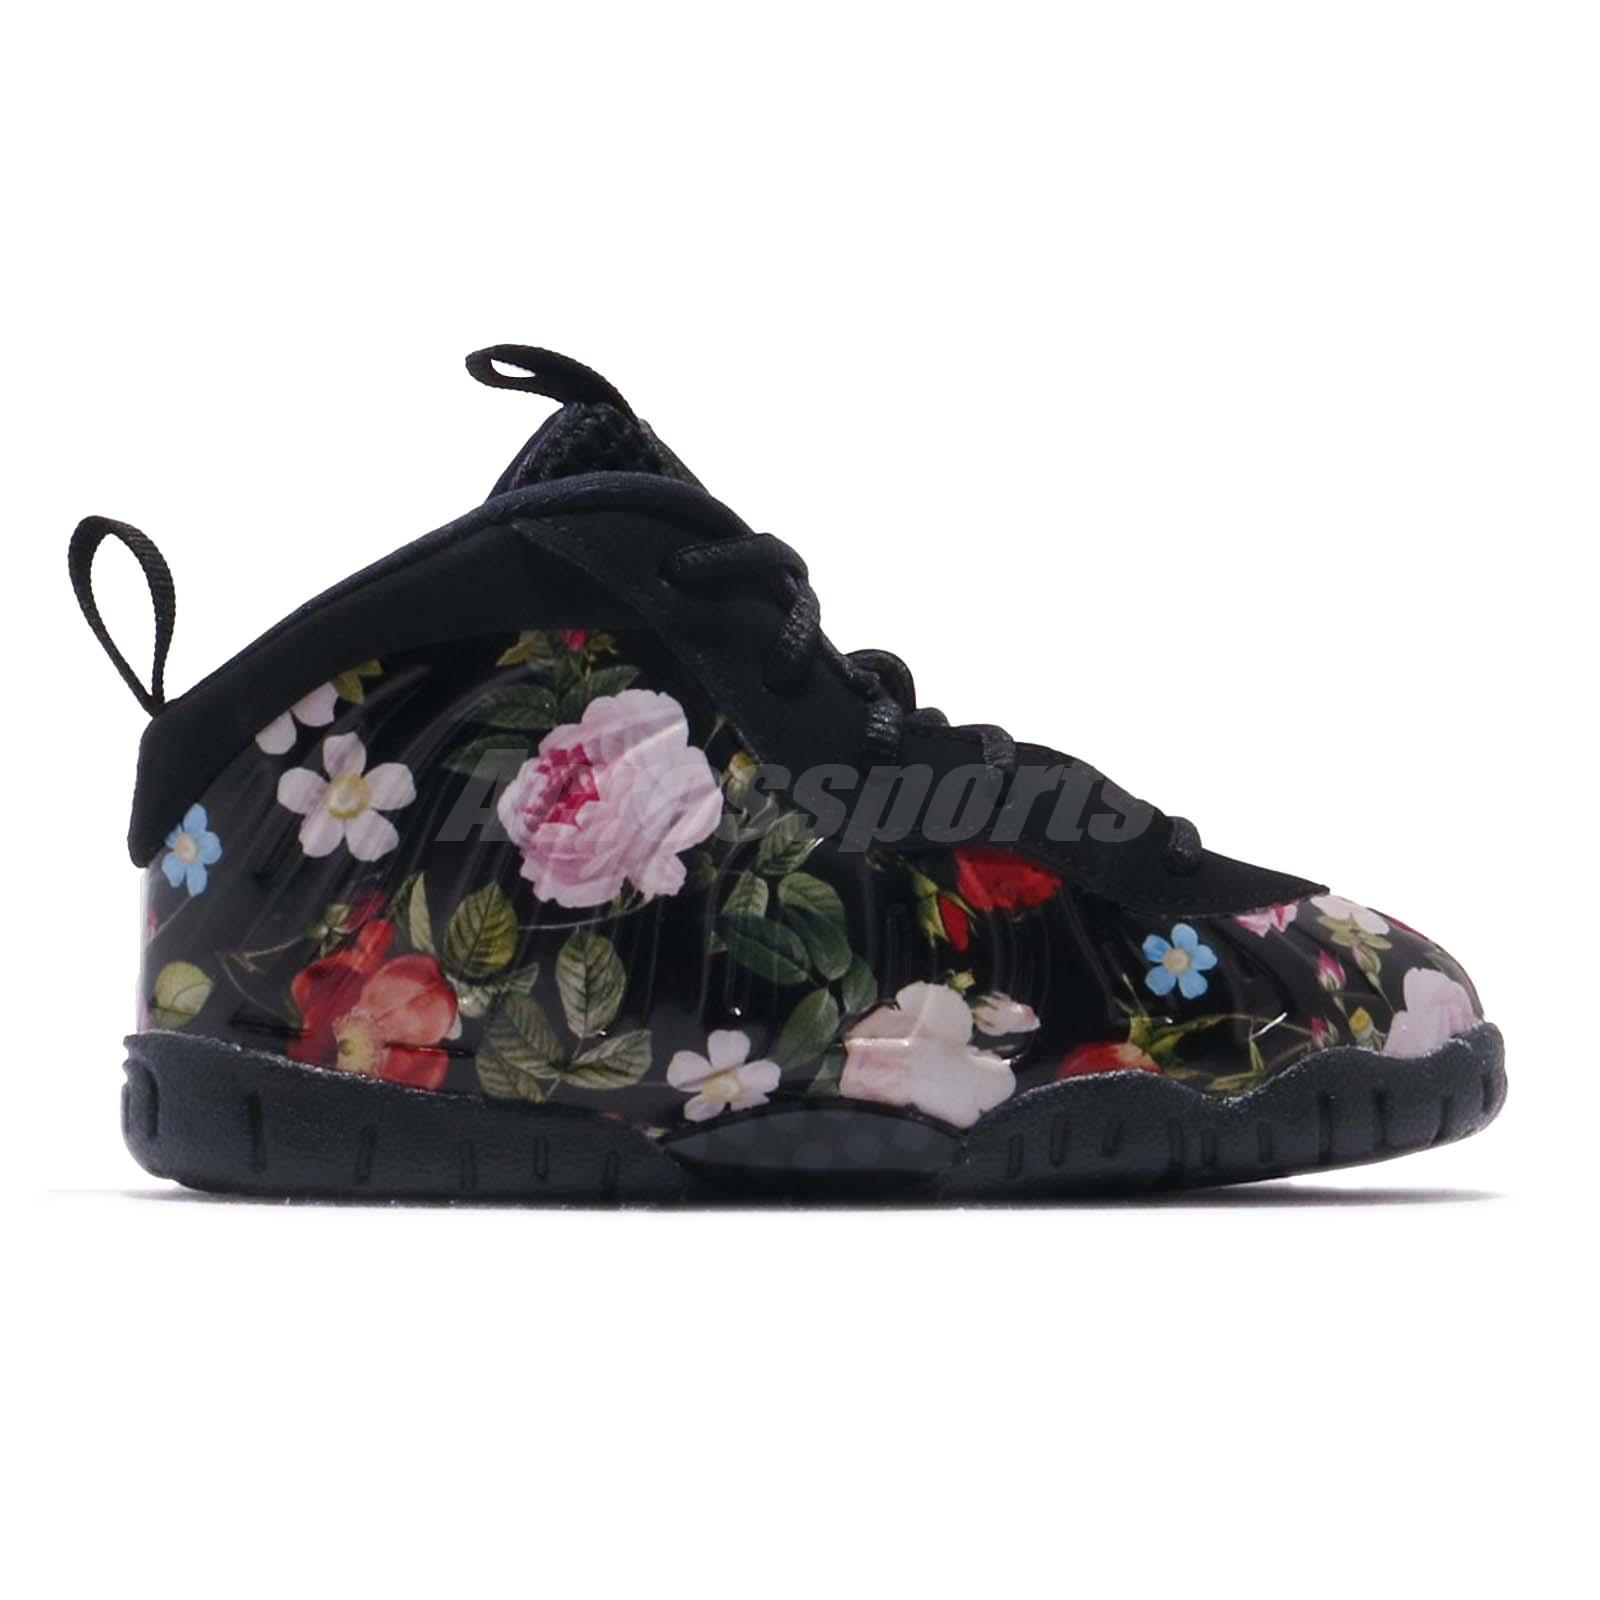 cheap for discount 9ca15 ecfd5 Nike Little Posite One PRM TD Foamposite Floral Toddler Infant Shoes ...